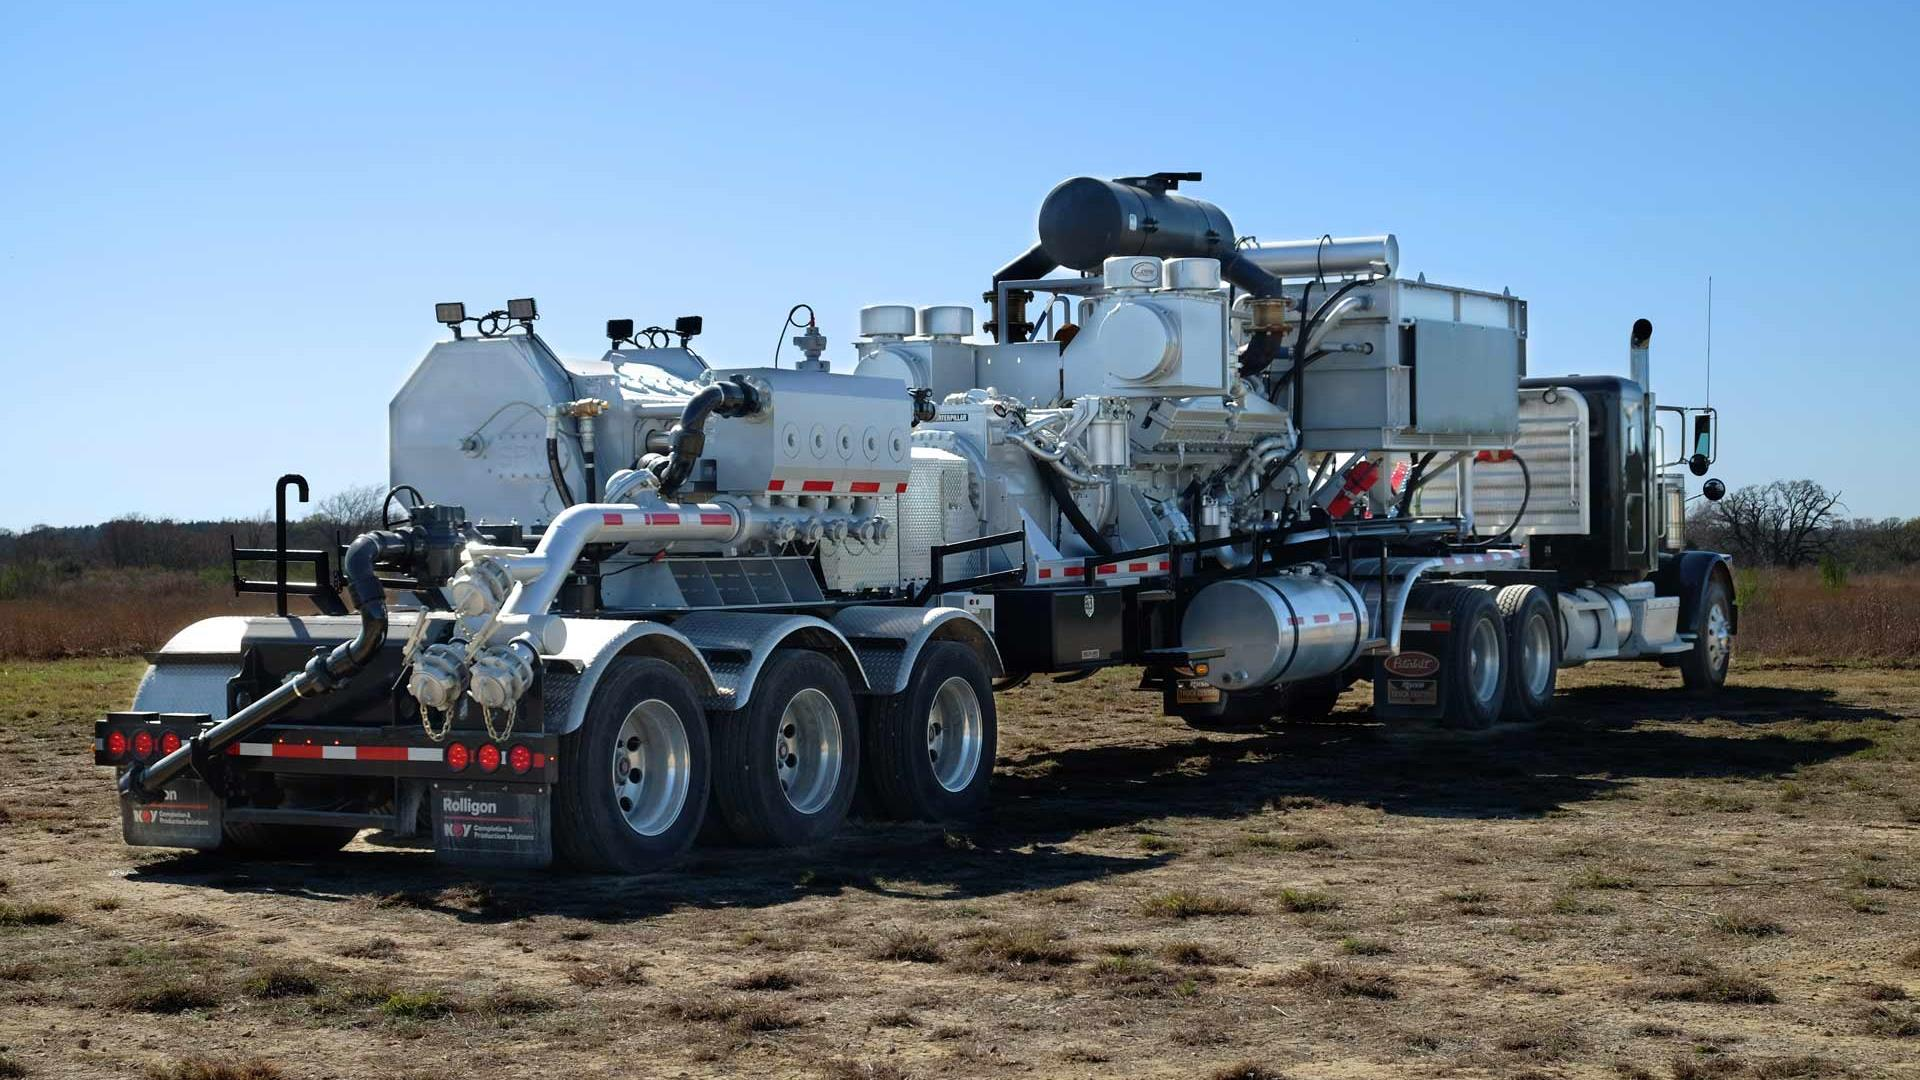 Rear/side view of Trailer-Mounted Frac pumper in field